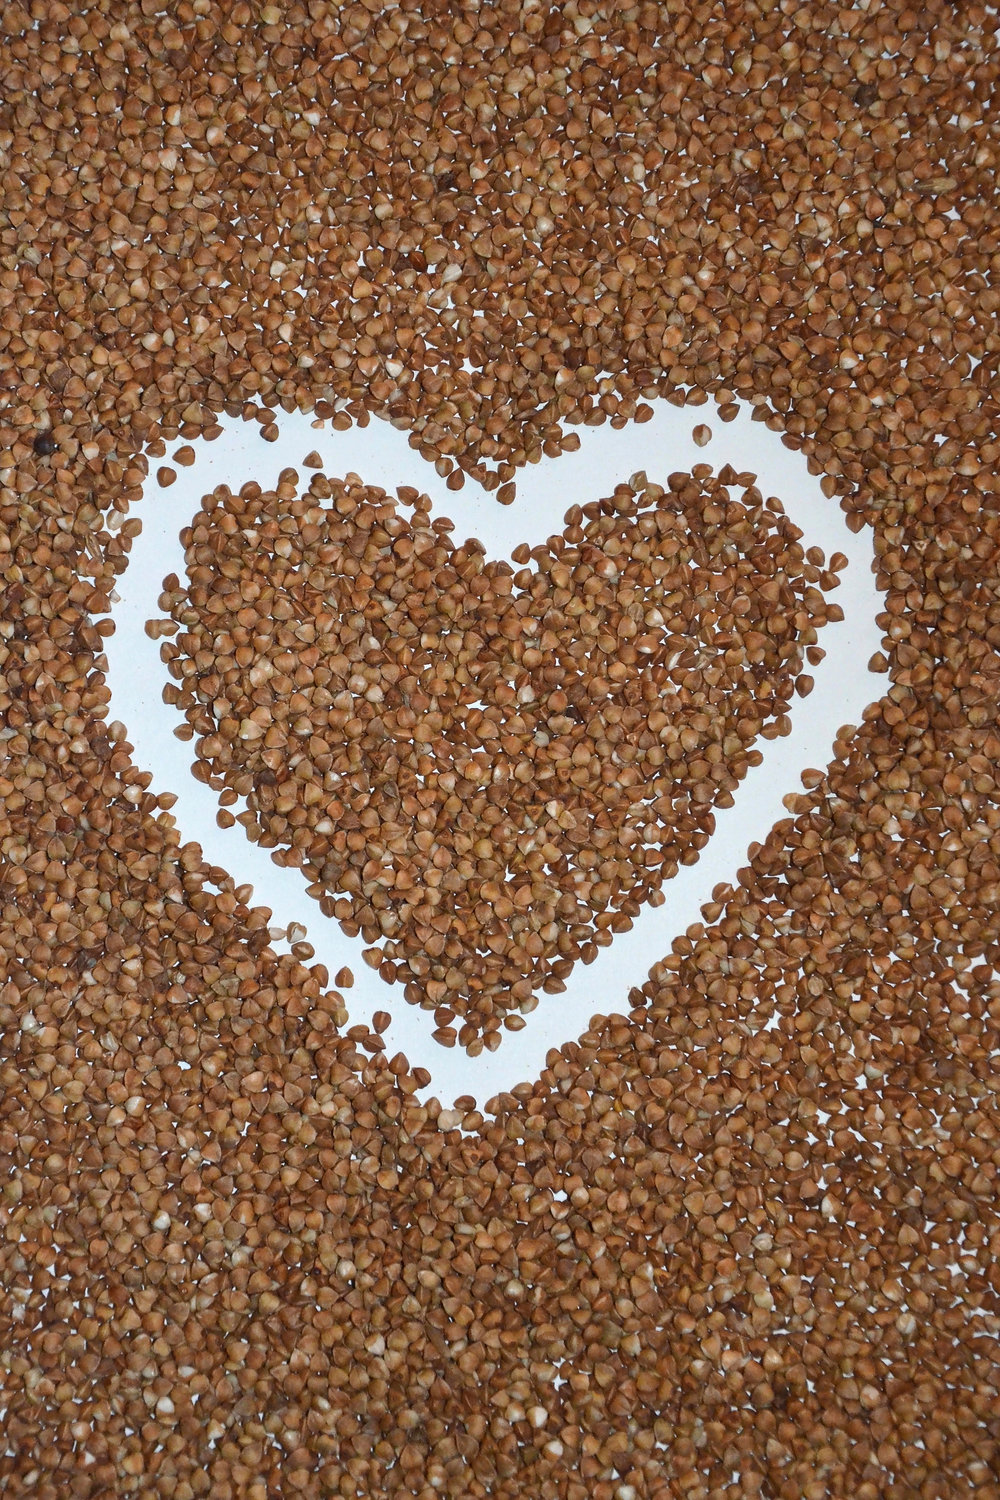 Image of buckwheat before it's turned into flour. Good for crafts and other fun recipes as well. Image from www.freeimages.com